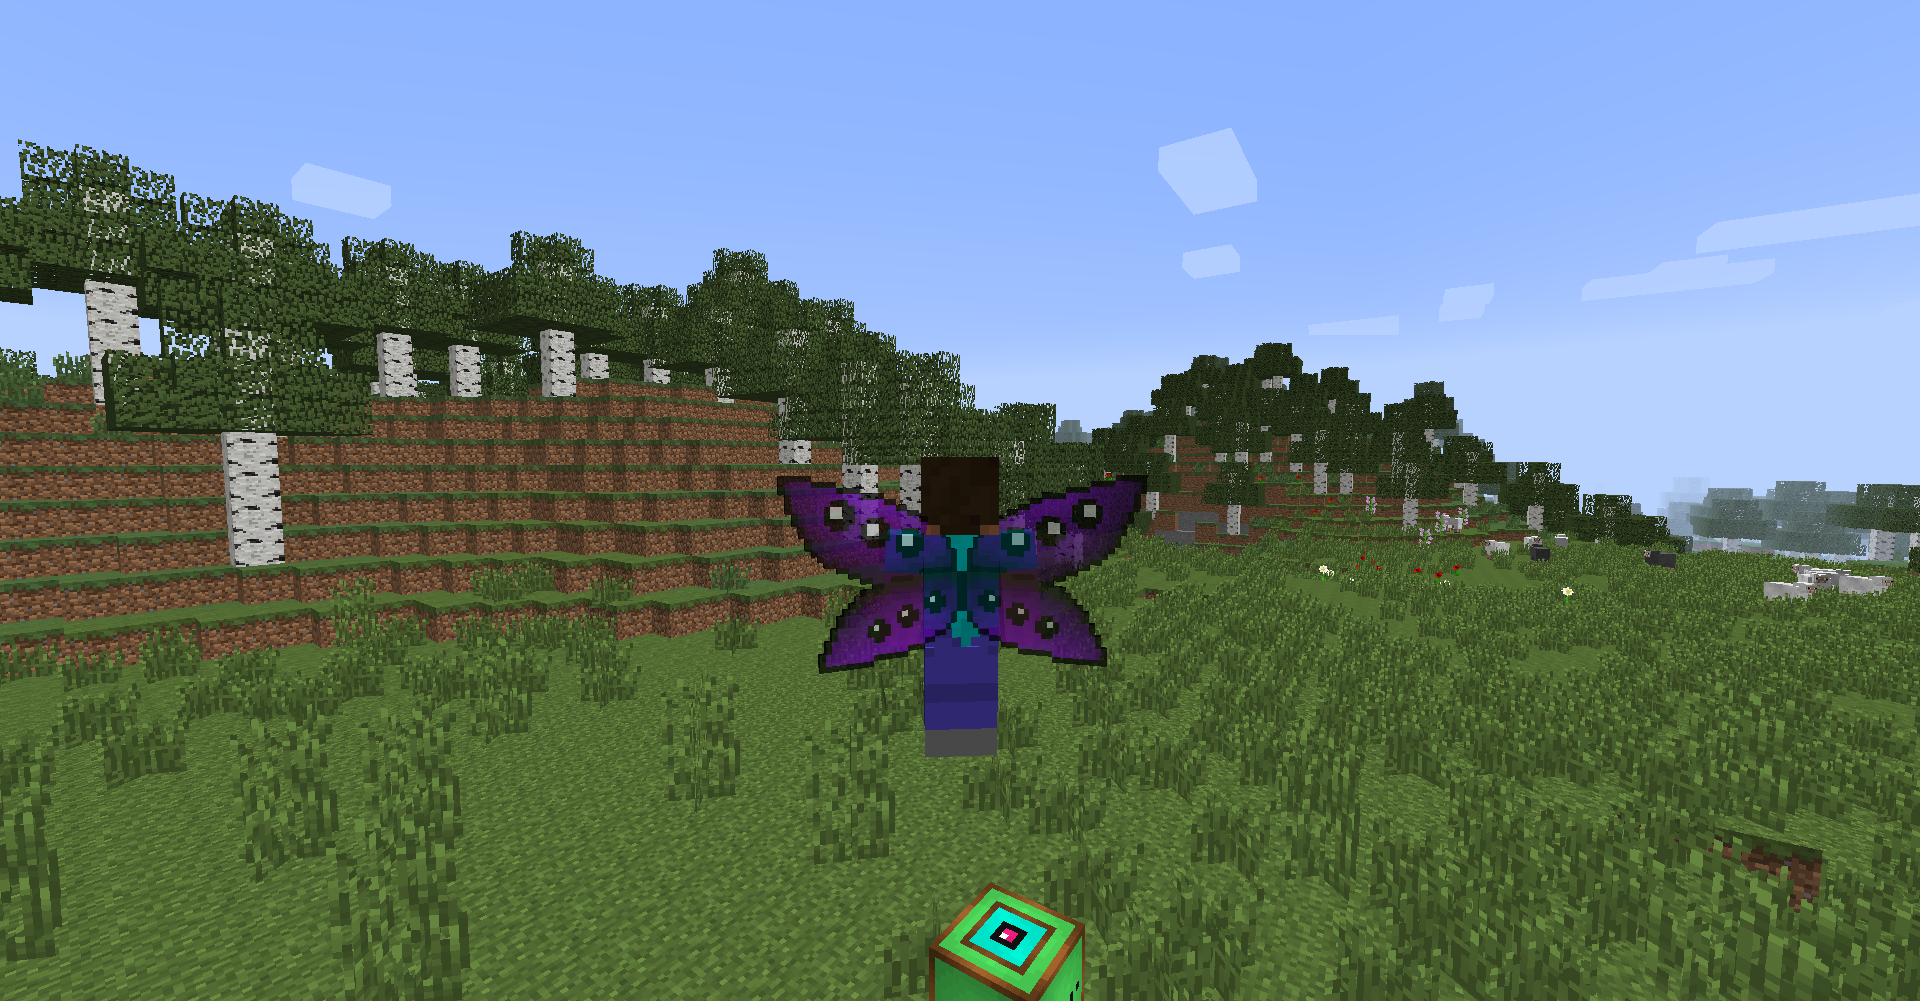 alfheim3 [1.7.10] The Wings of Alfheim Mod Download